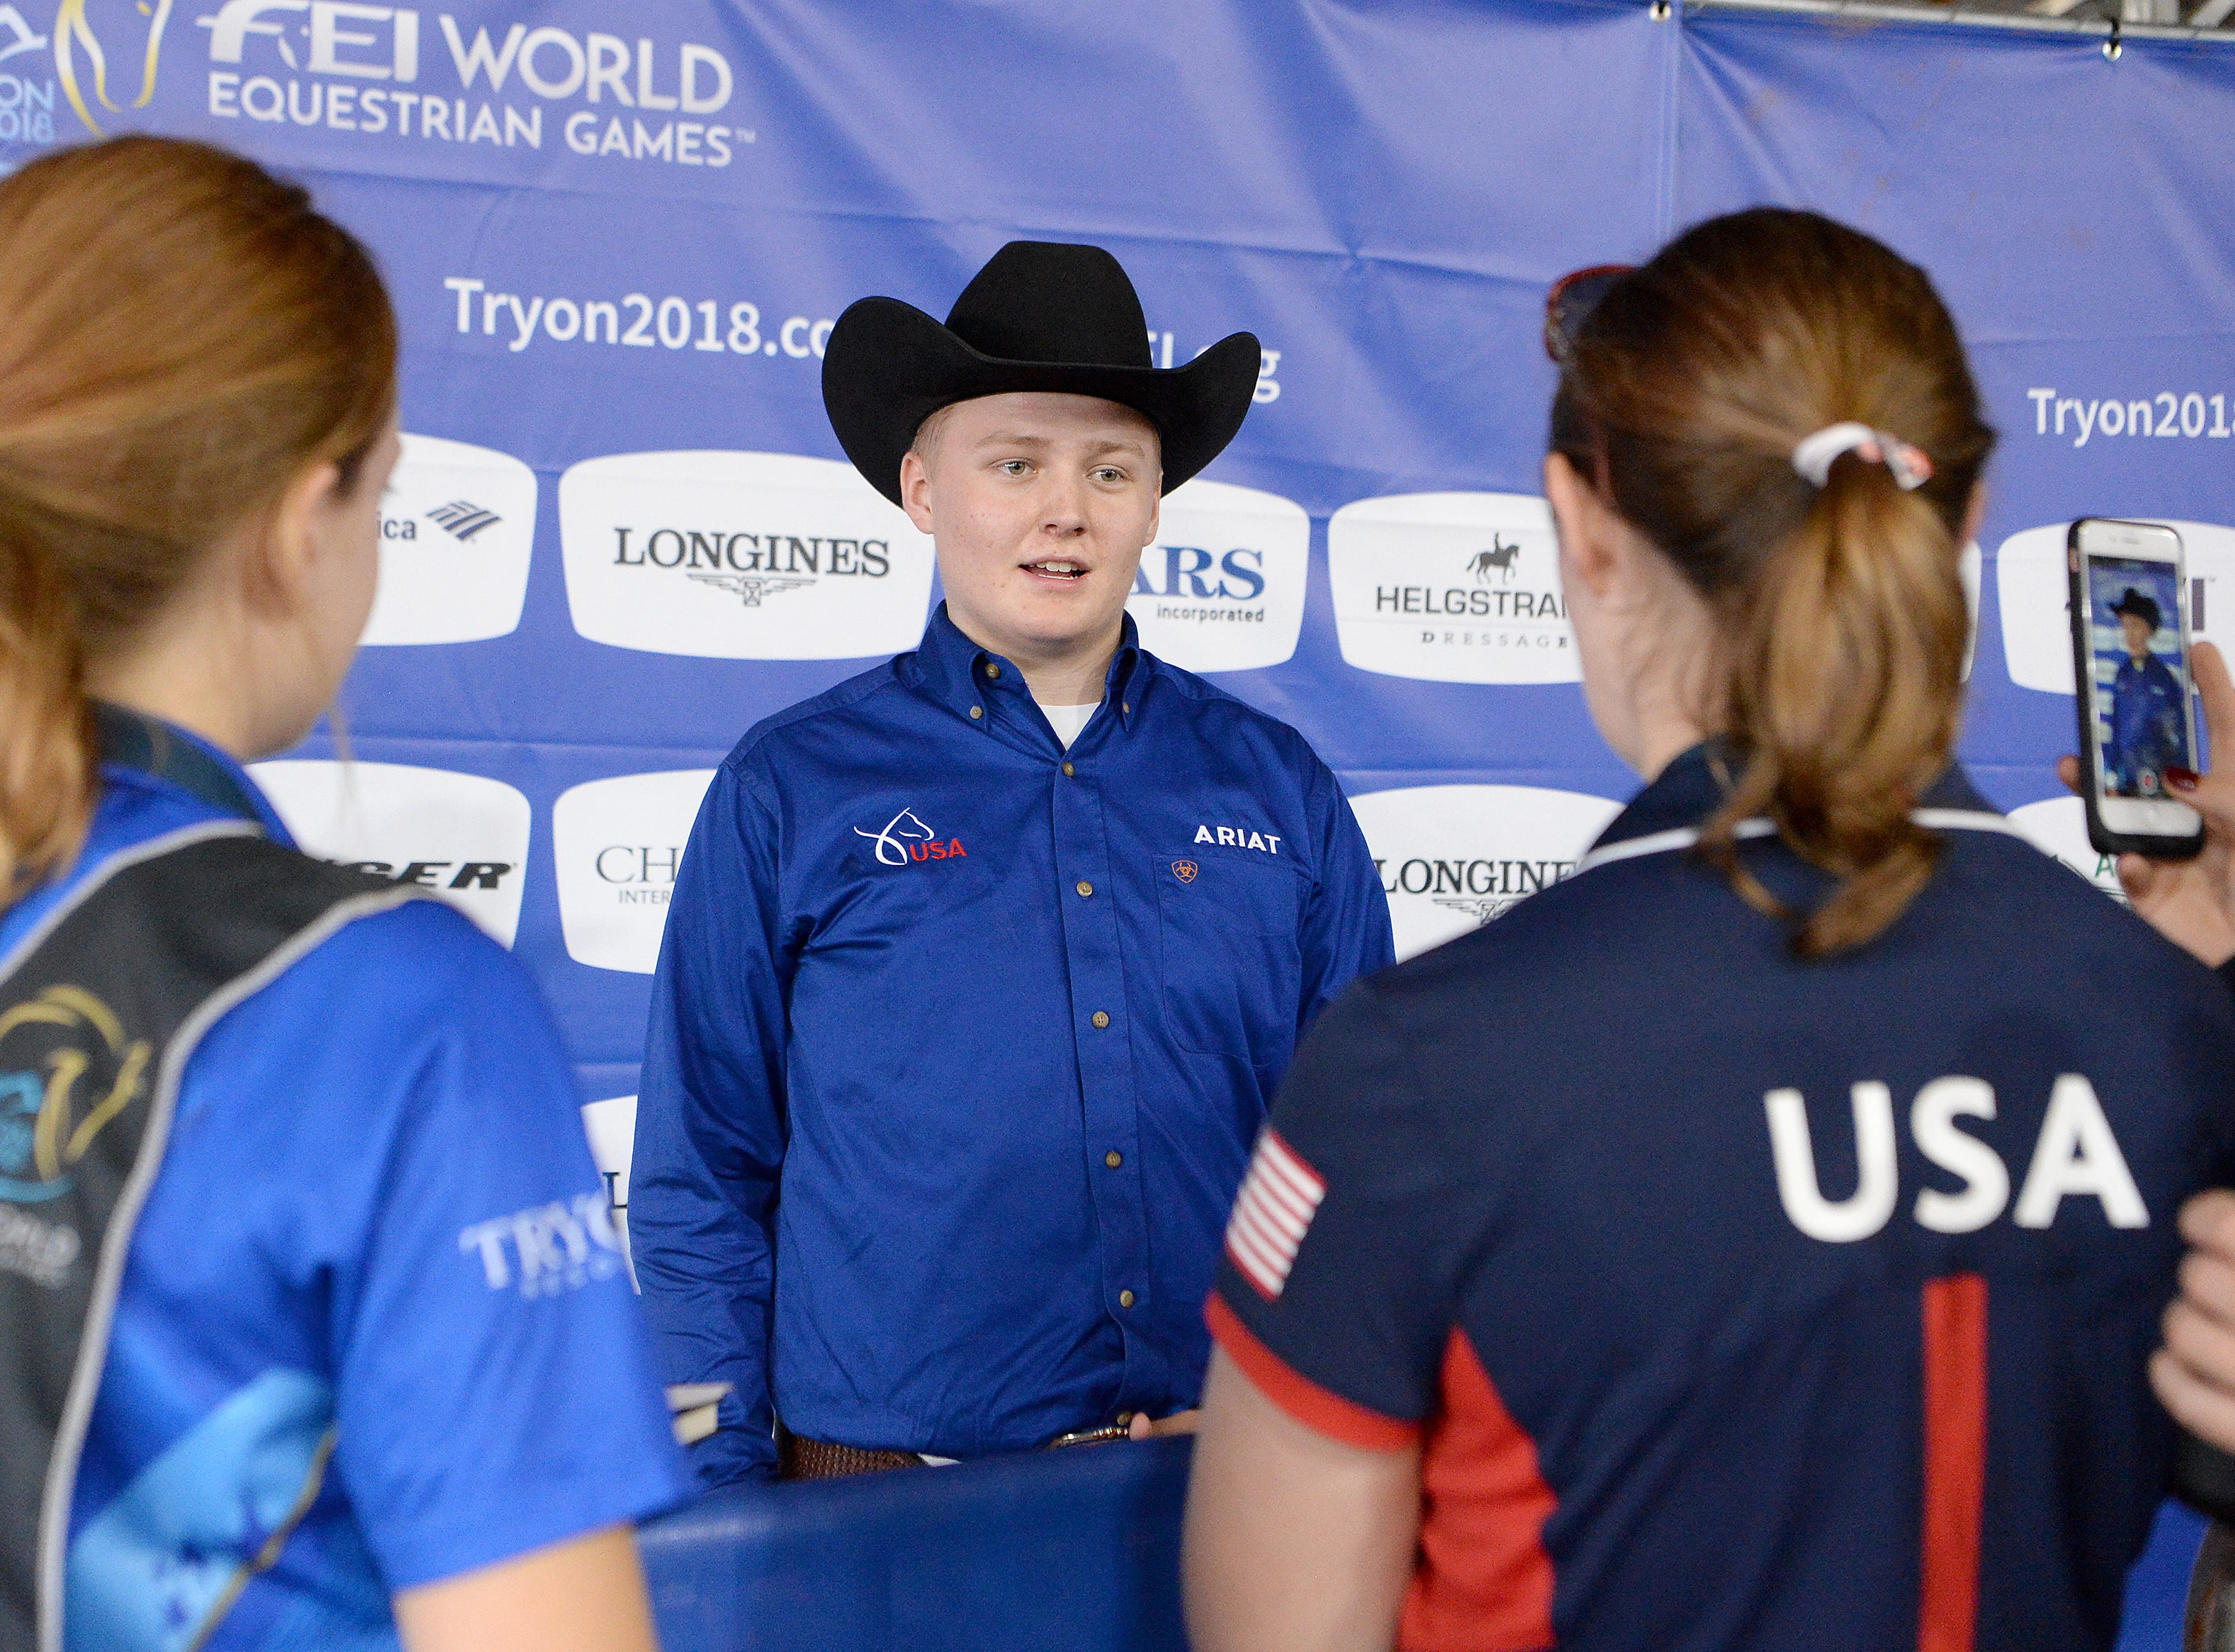 Cade Mccutcheon, of Texas, talks with media members after his turn in the ring for the reining competition during the FEI World Equestrian Games at the Tryon International Equestrian Center on Sept. 12, 2018. A score of 229 put him in the lead for the morning's competition lineup. He is the youngest United States athlete in the games at 18-years-old.